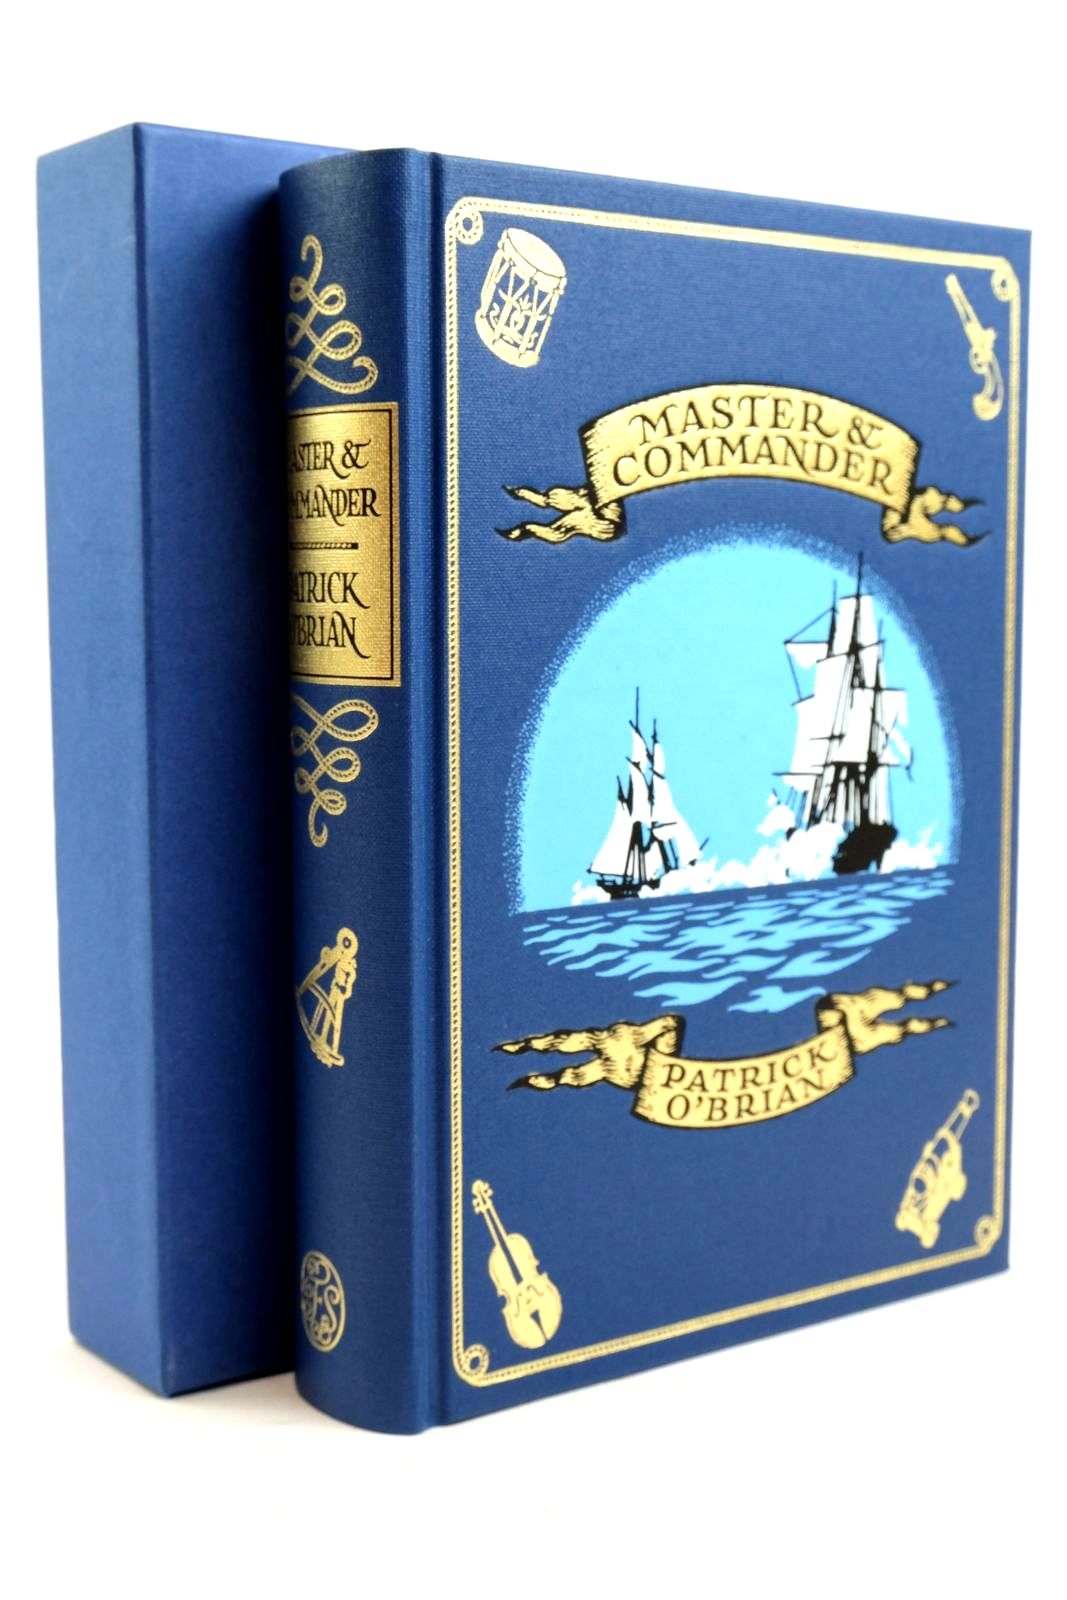 Photo of MASTER & COMMANDER written by O'Brian, Patrick published by Folio Society (STOCK CODE: 1320761)  for sale by Stella & Rose's Books